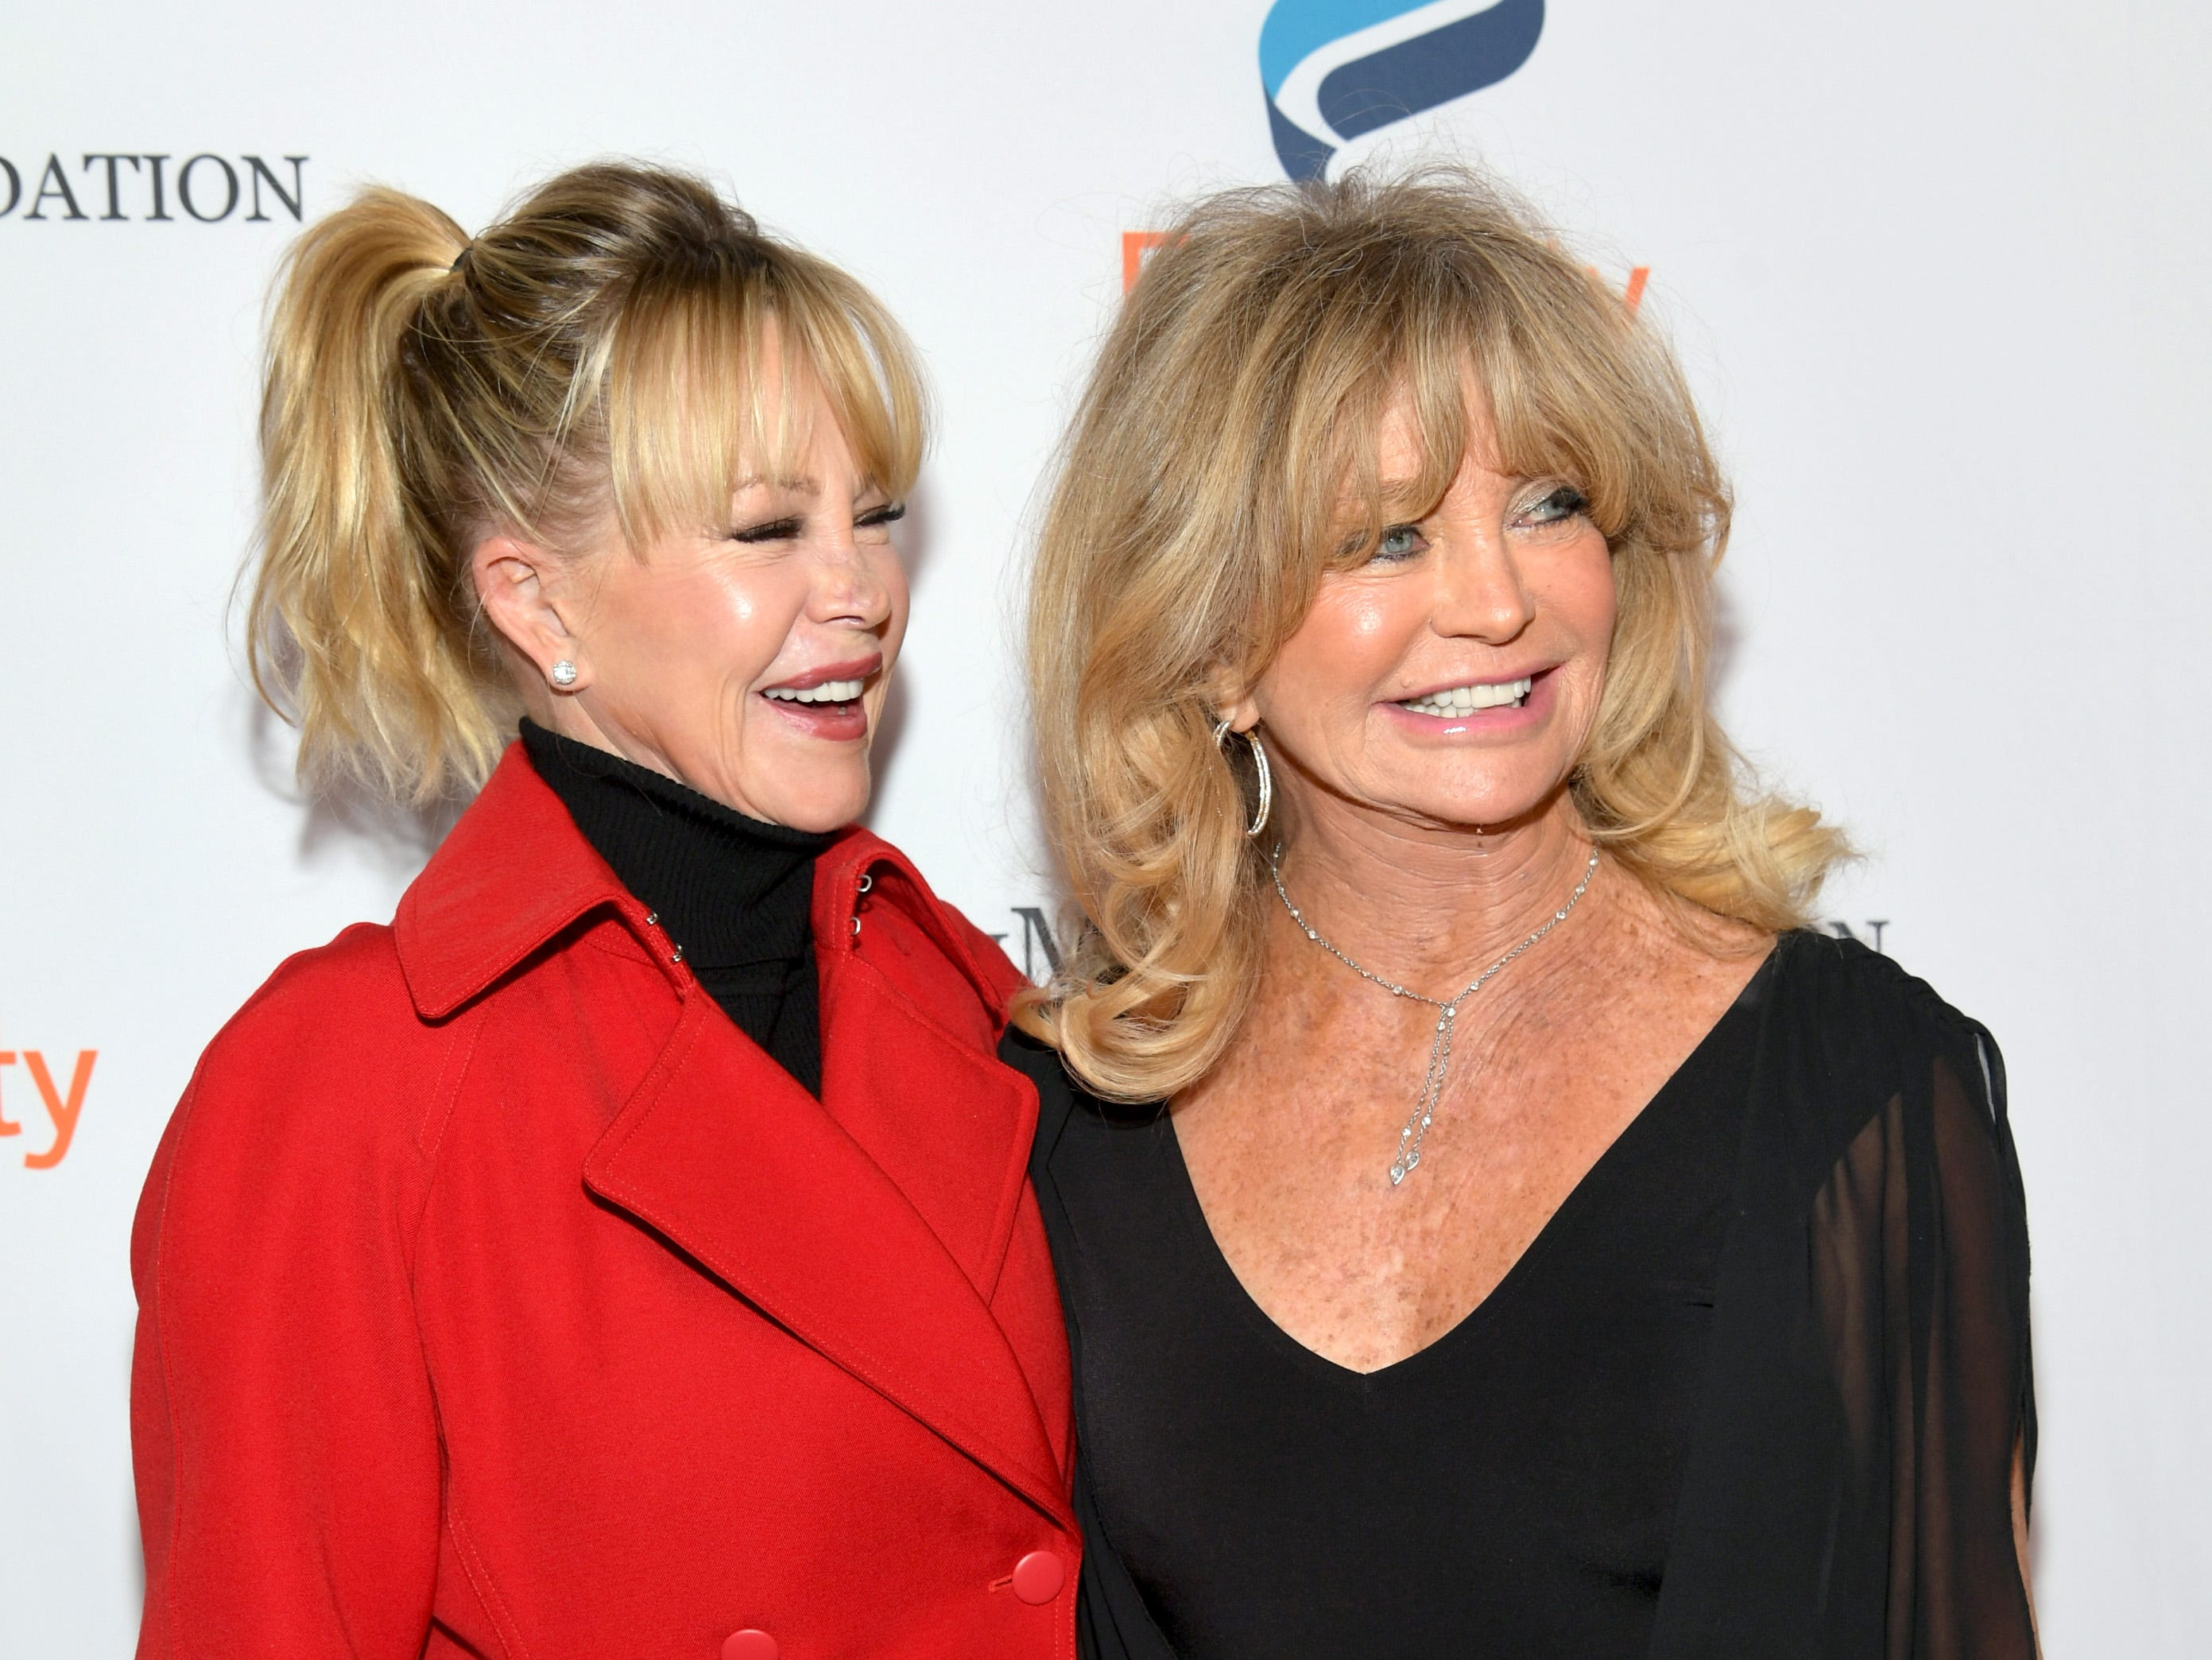 BEVERLY HILLS, CA - DECEMBER 03:  Melanie Griffith (L) and Goldie Hawn attend Equality Now's Make Equality Reality Gala 2018 at The Beverly Hilton Hotel on December 3, 2018 in Beverly Hills, California.  (Photo by Emma McIntyre/Getty Images for Equality Now) ORG XMIT: 775256434 ORIG FILE ID: 1068189122